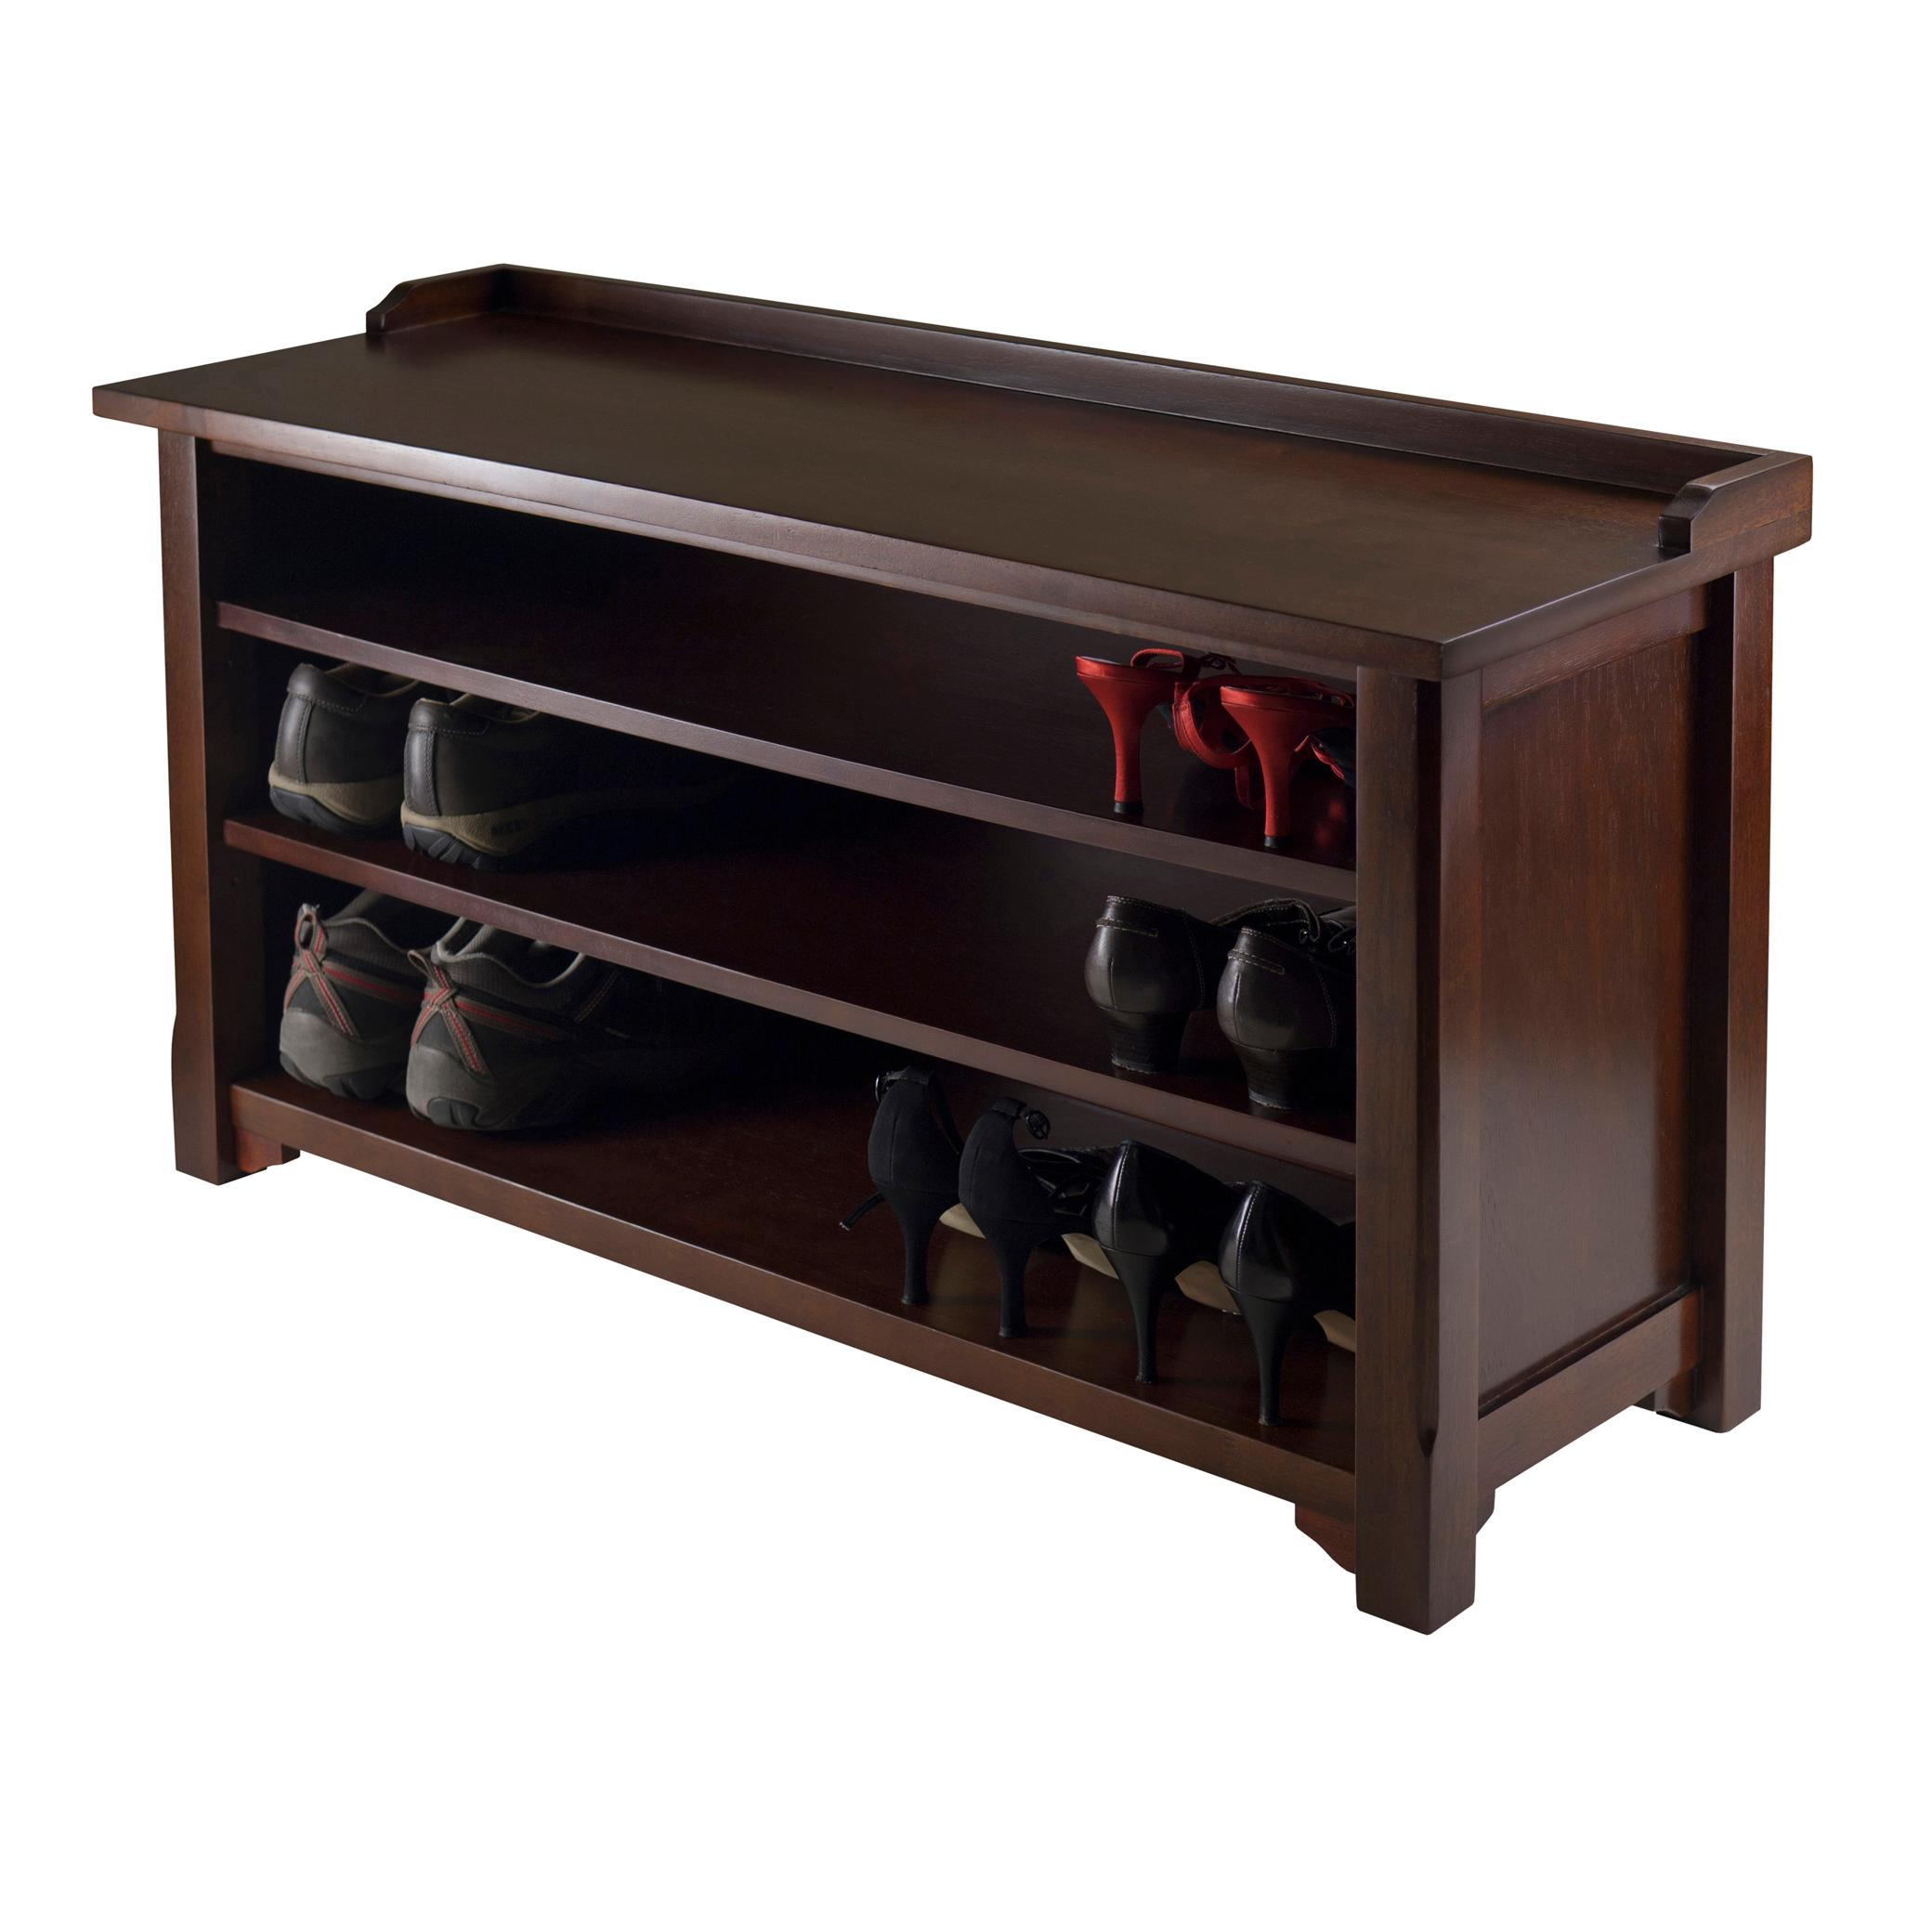 Home decorators collection storage benches